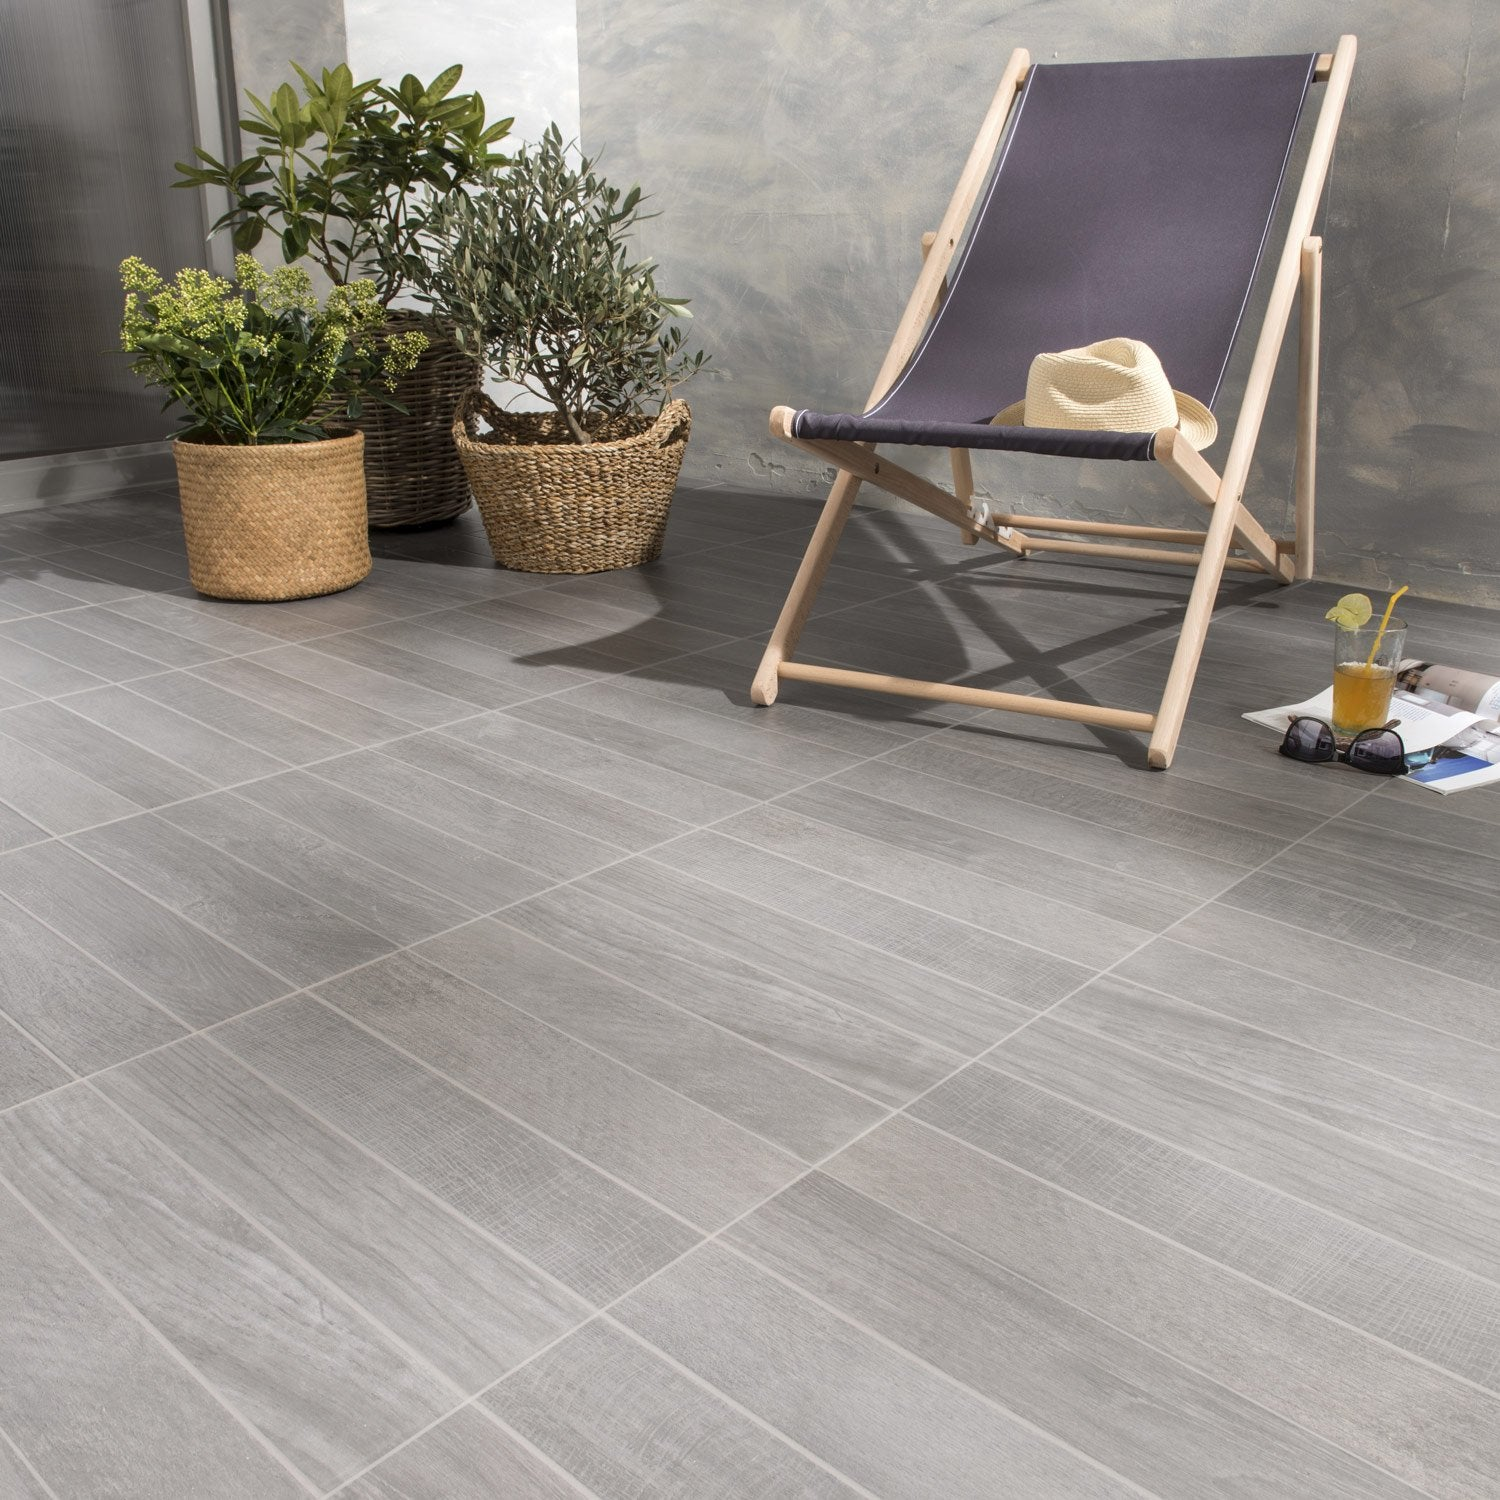 Carrelage anthracite effet bois jungle x cm for Porcelanosa carrelage exterieur imitation bois